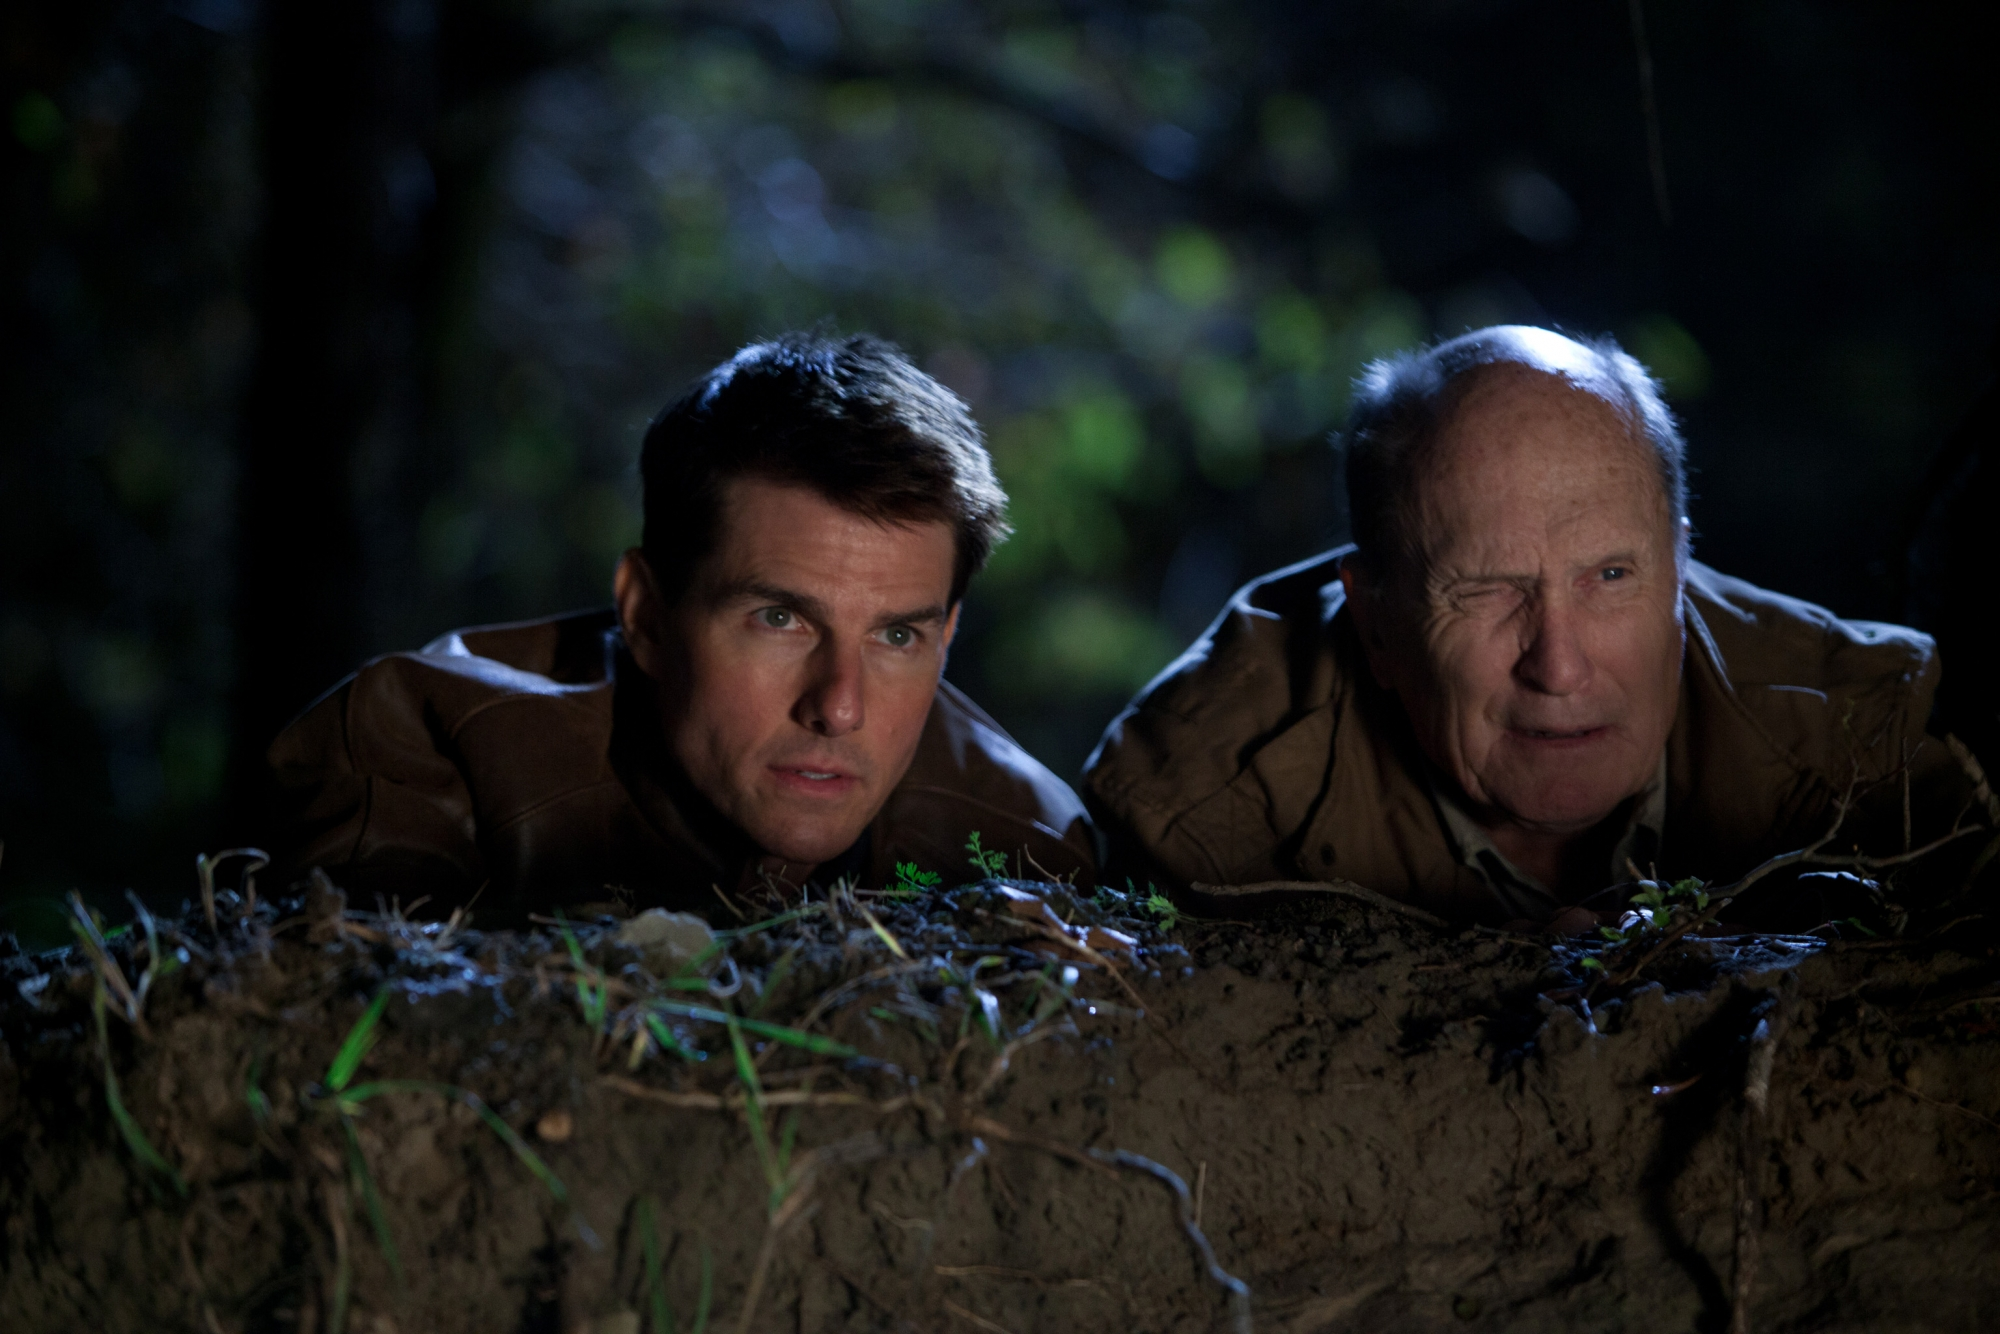 jack-reacher-tom-cruise-robert-duvall